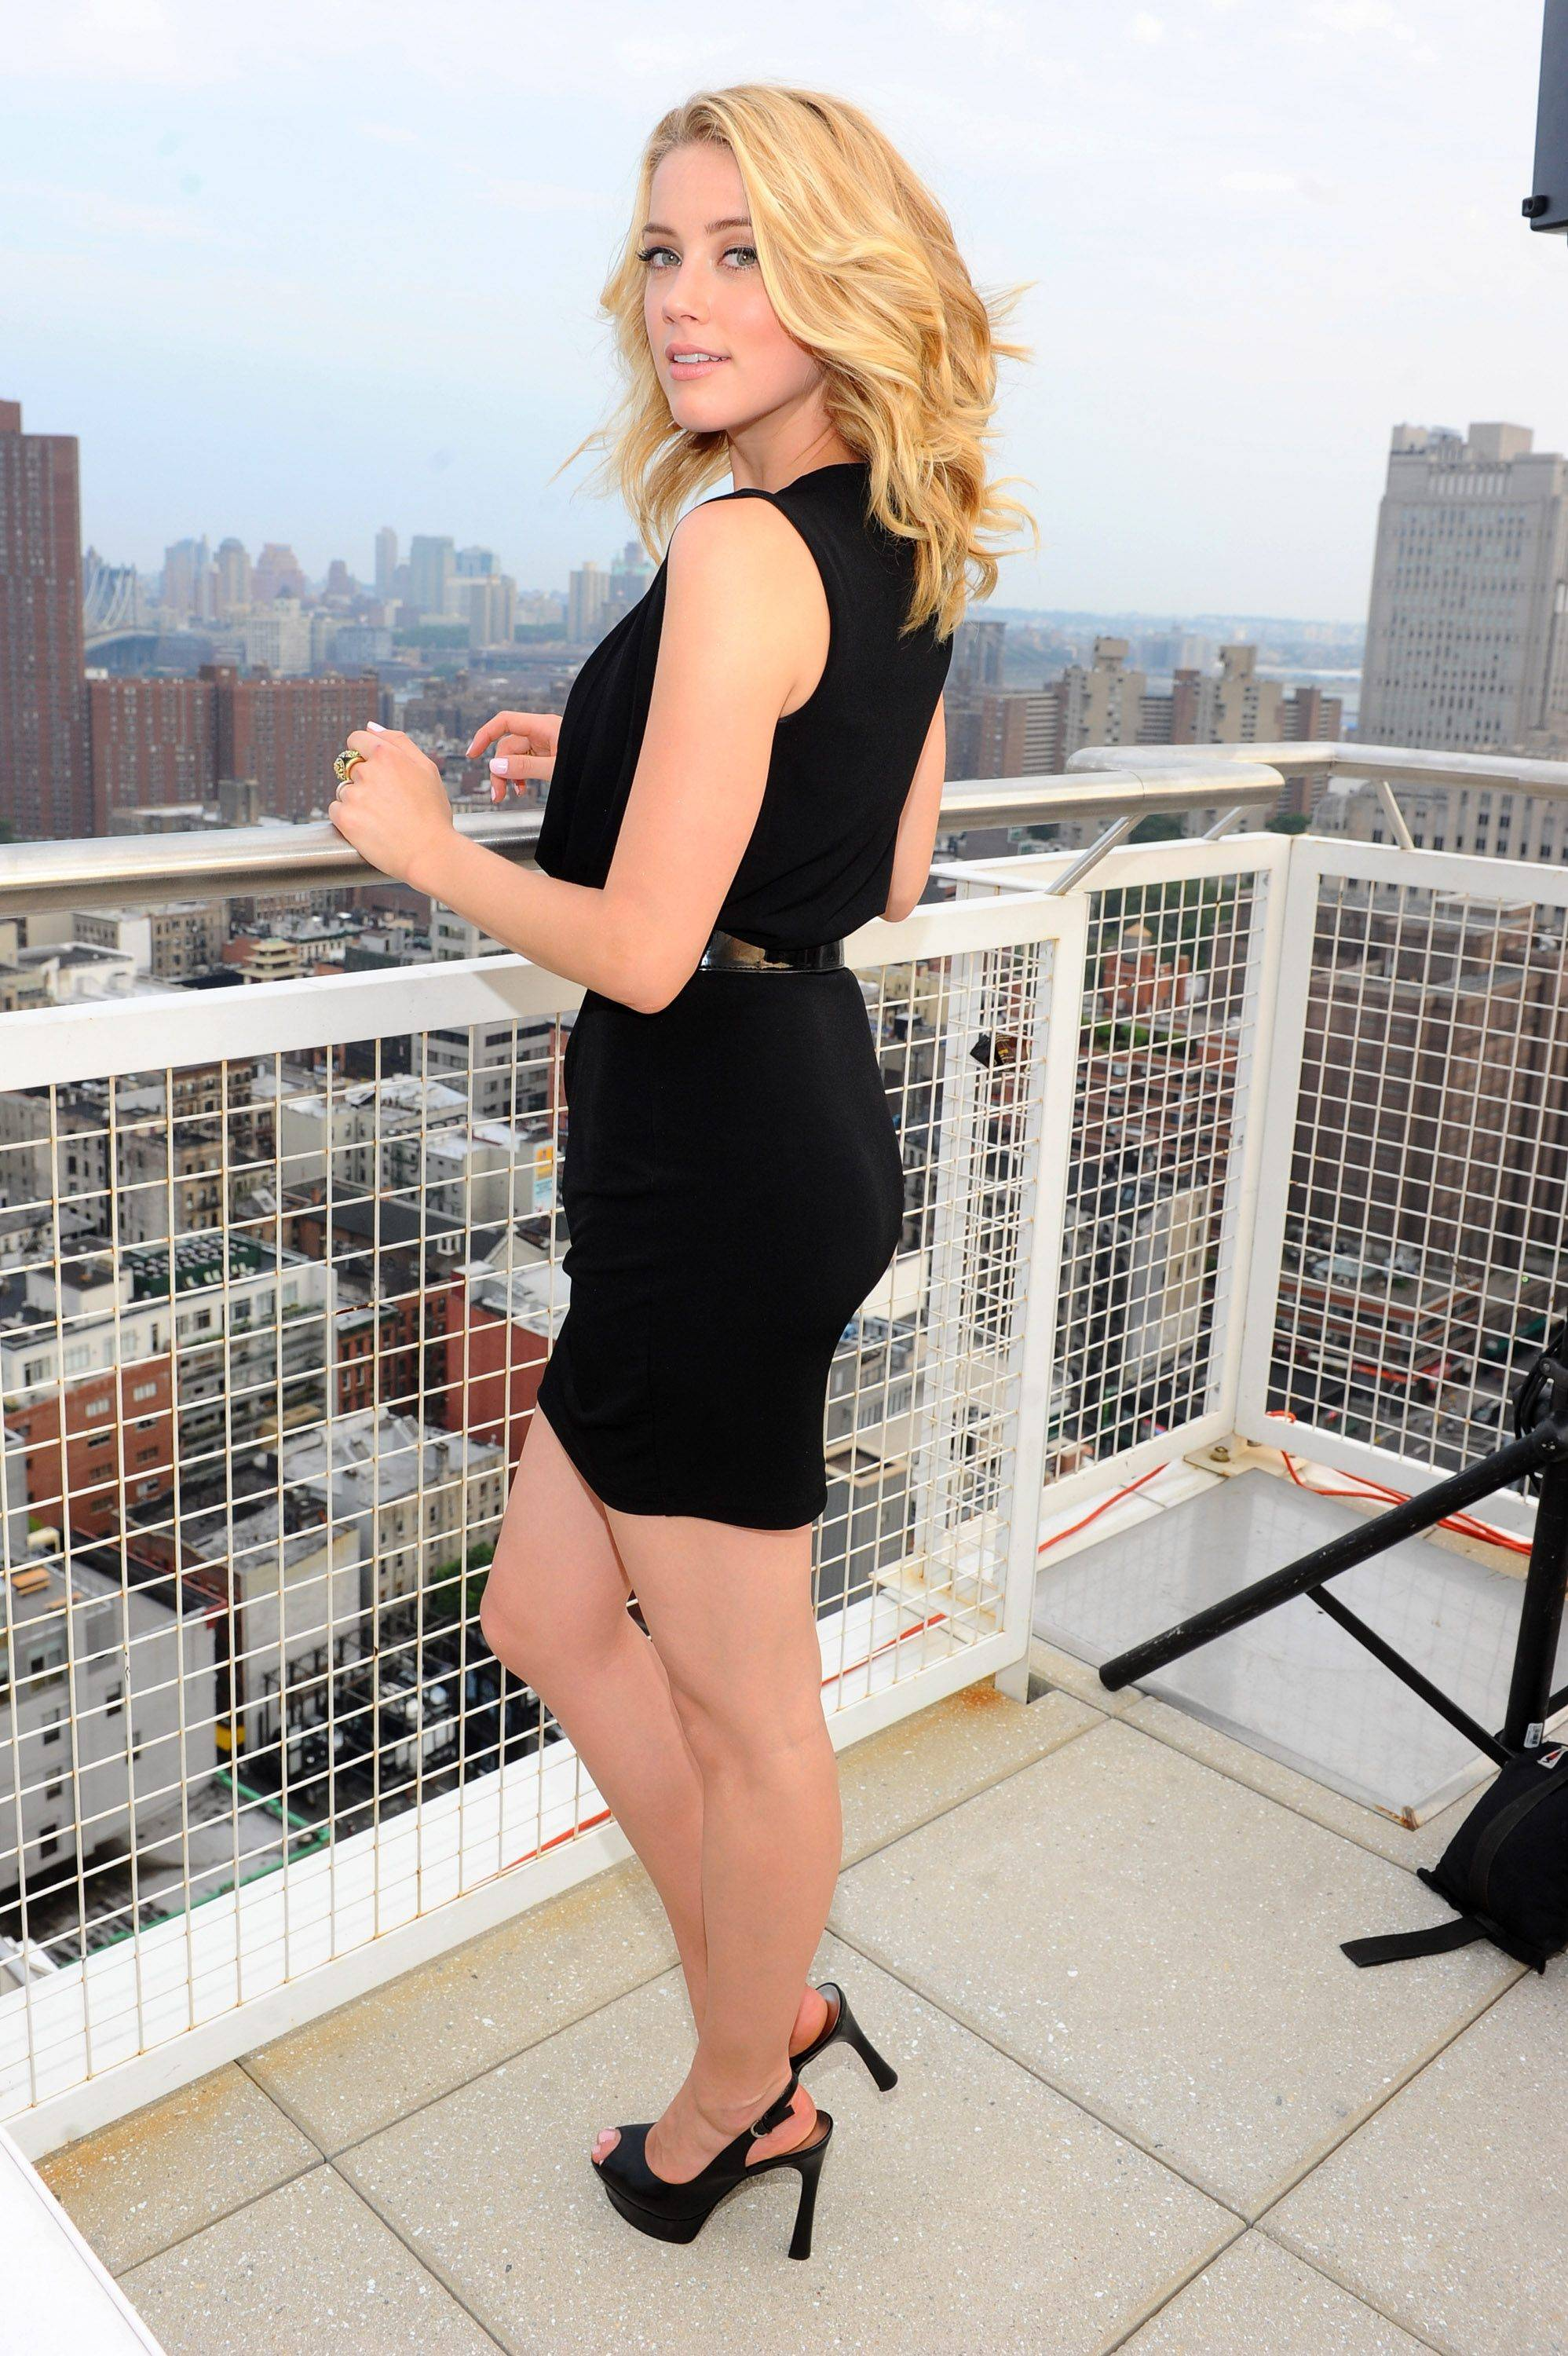 Amber Heard Hot Pictures, Sexy Images & Videos